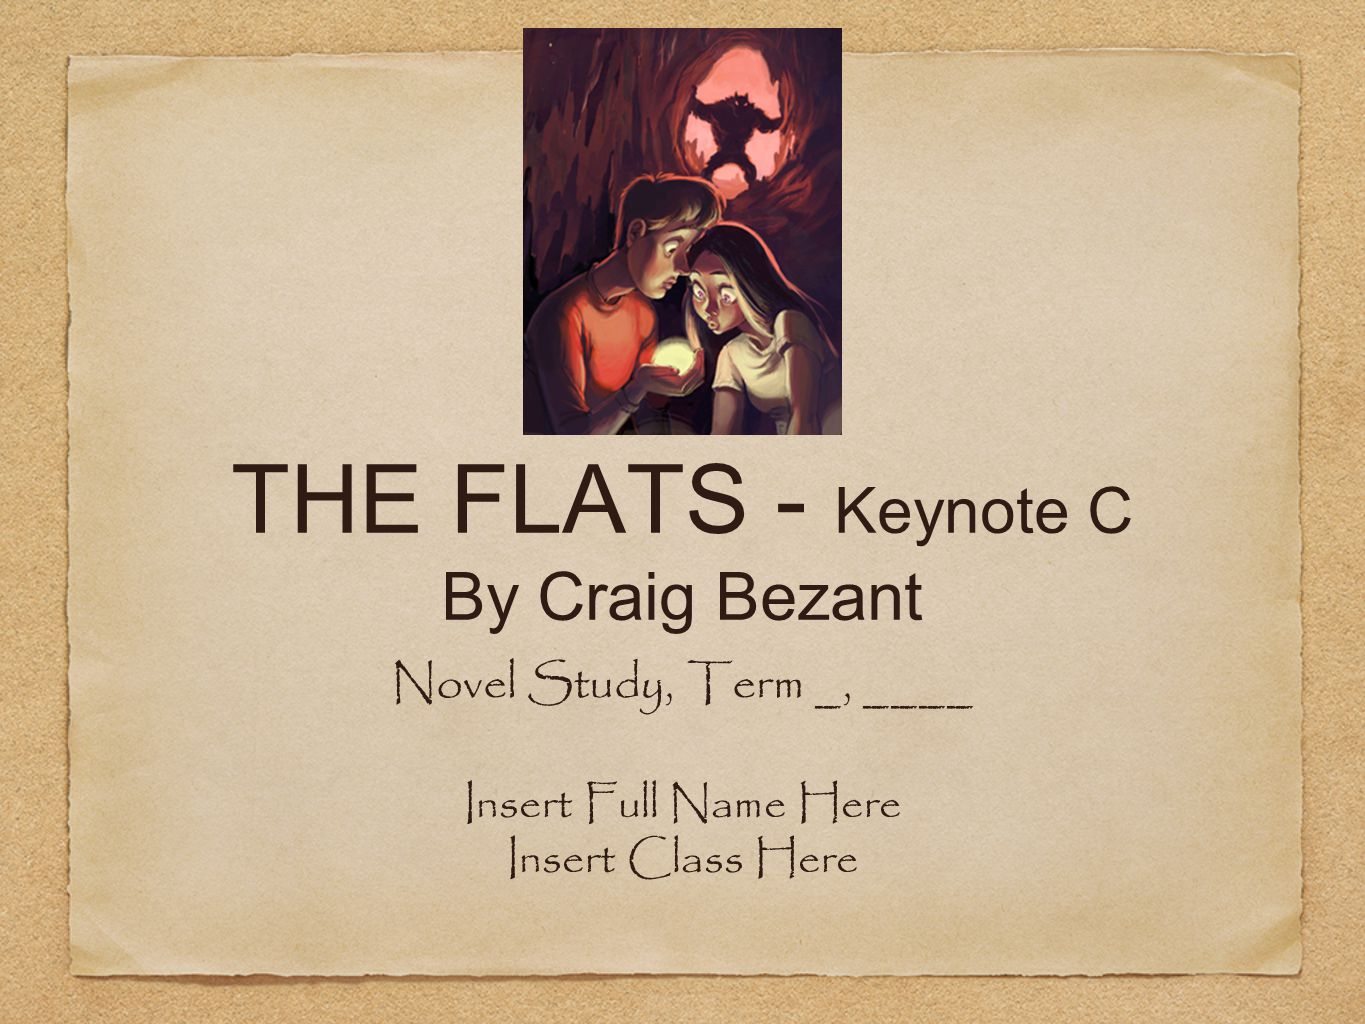 THE FLATS - Keynote C By Craig Bezant Novel Study, Term _, ____ Insert Full Name Here Insert Class Here